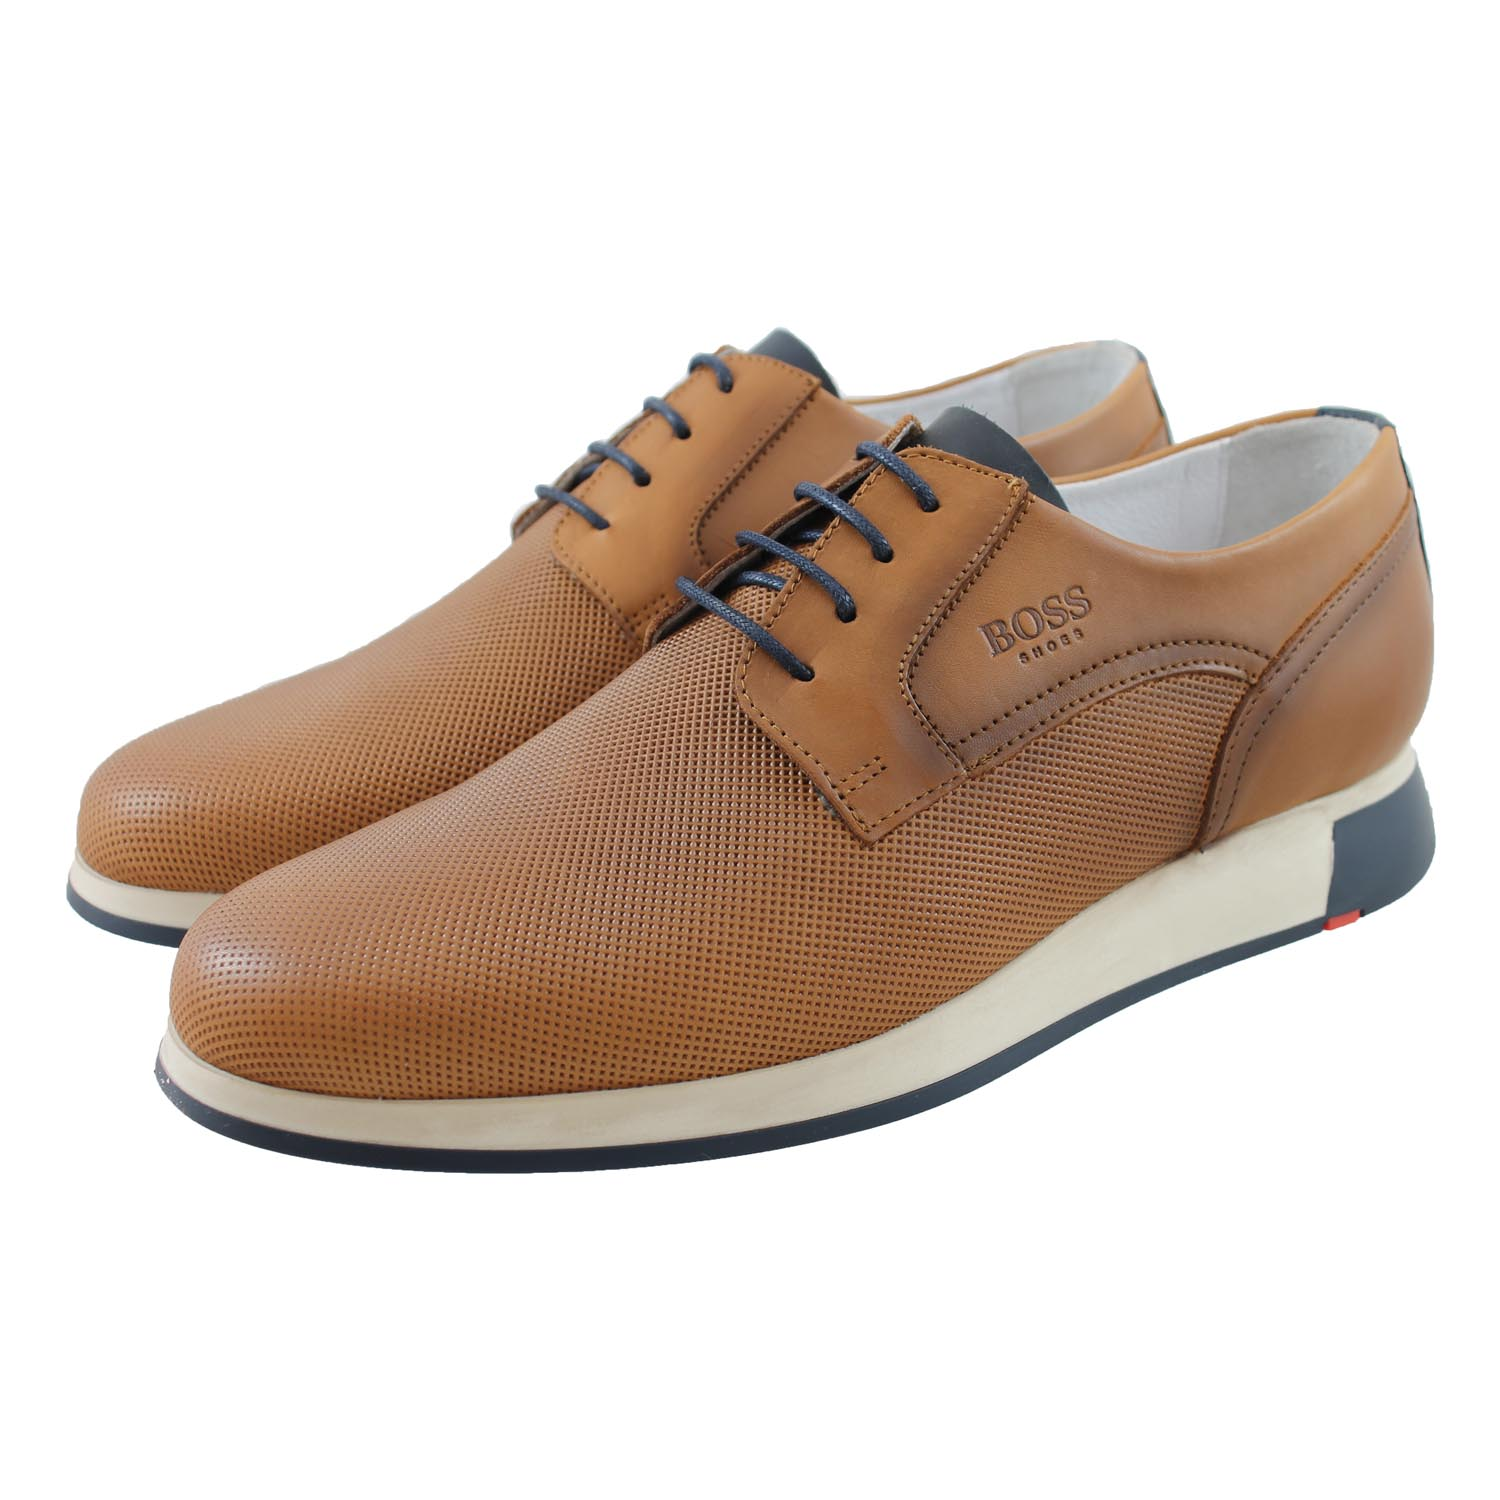 80cd77395aa Boss Shoes LP250 Ανδρικά Casual Ταμπά | TheShoe.gr